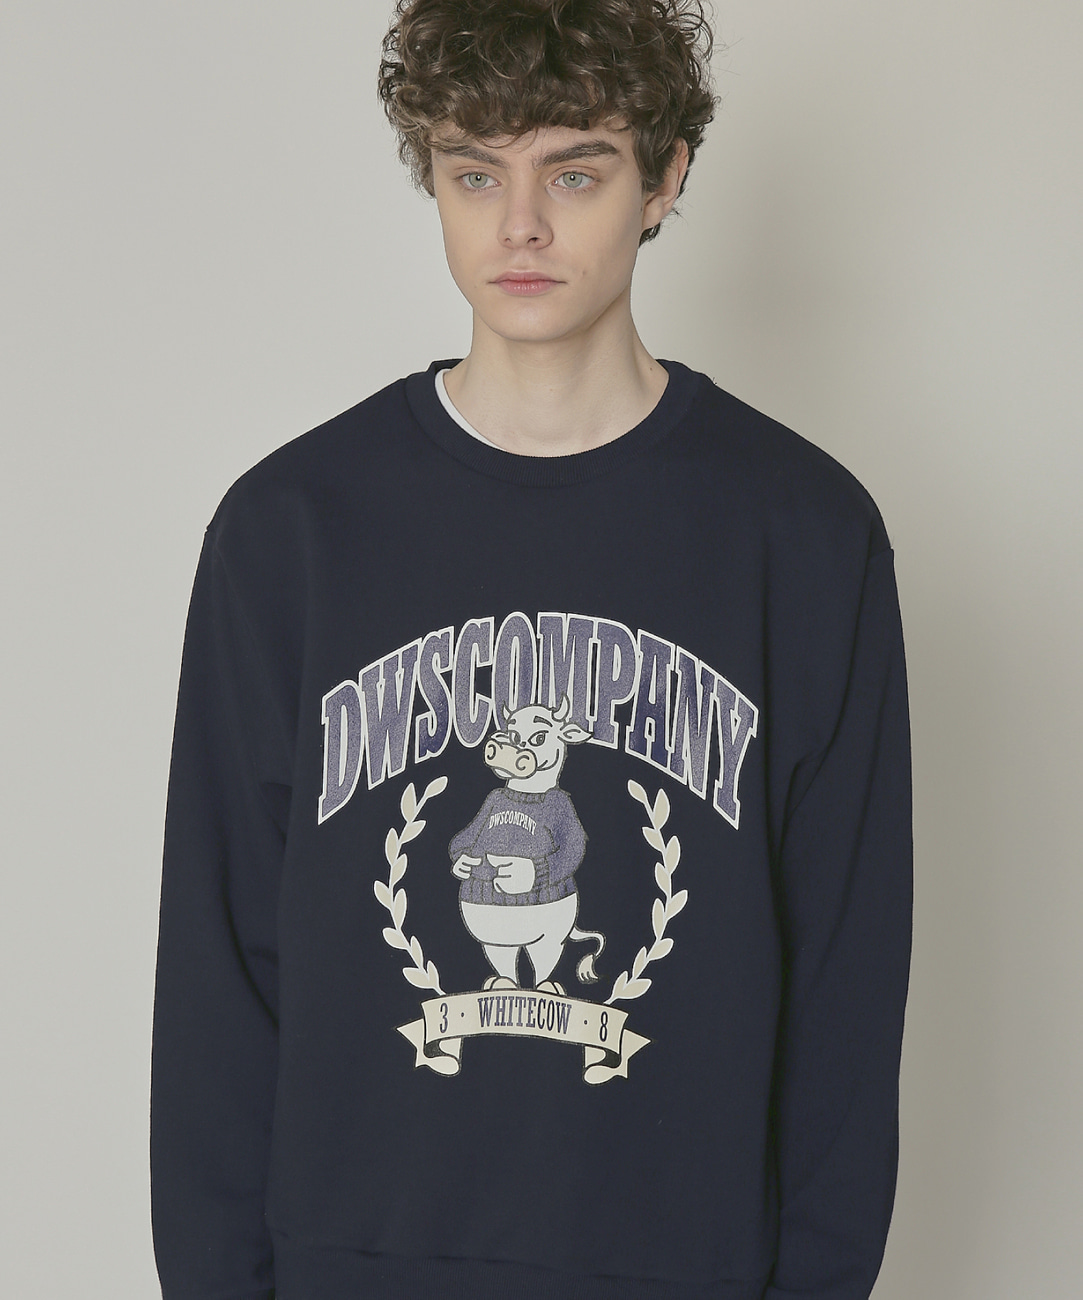 DWS 38 WHITE COW SWEATSHIRT(DARK NAVY)